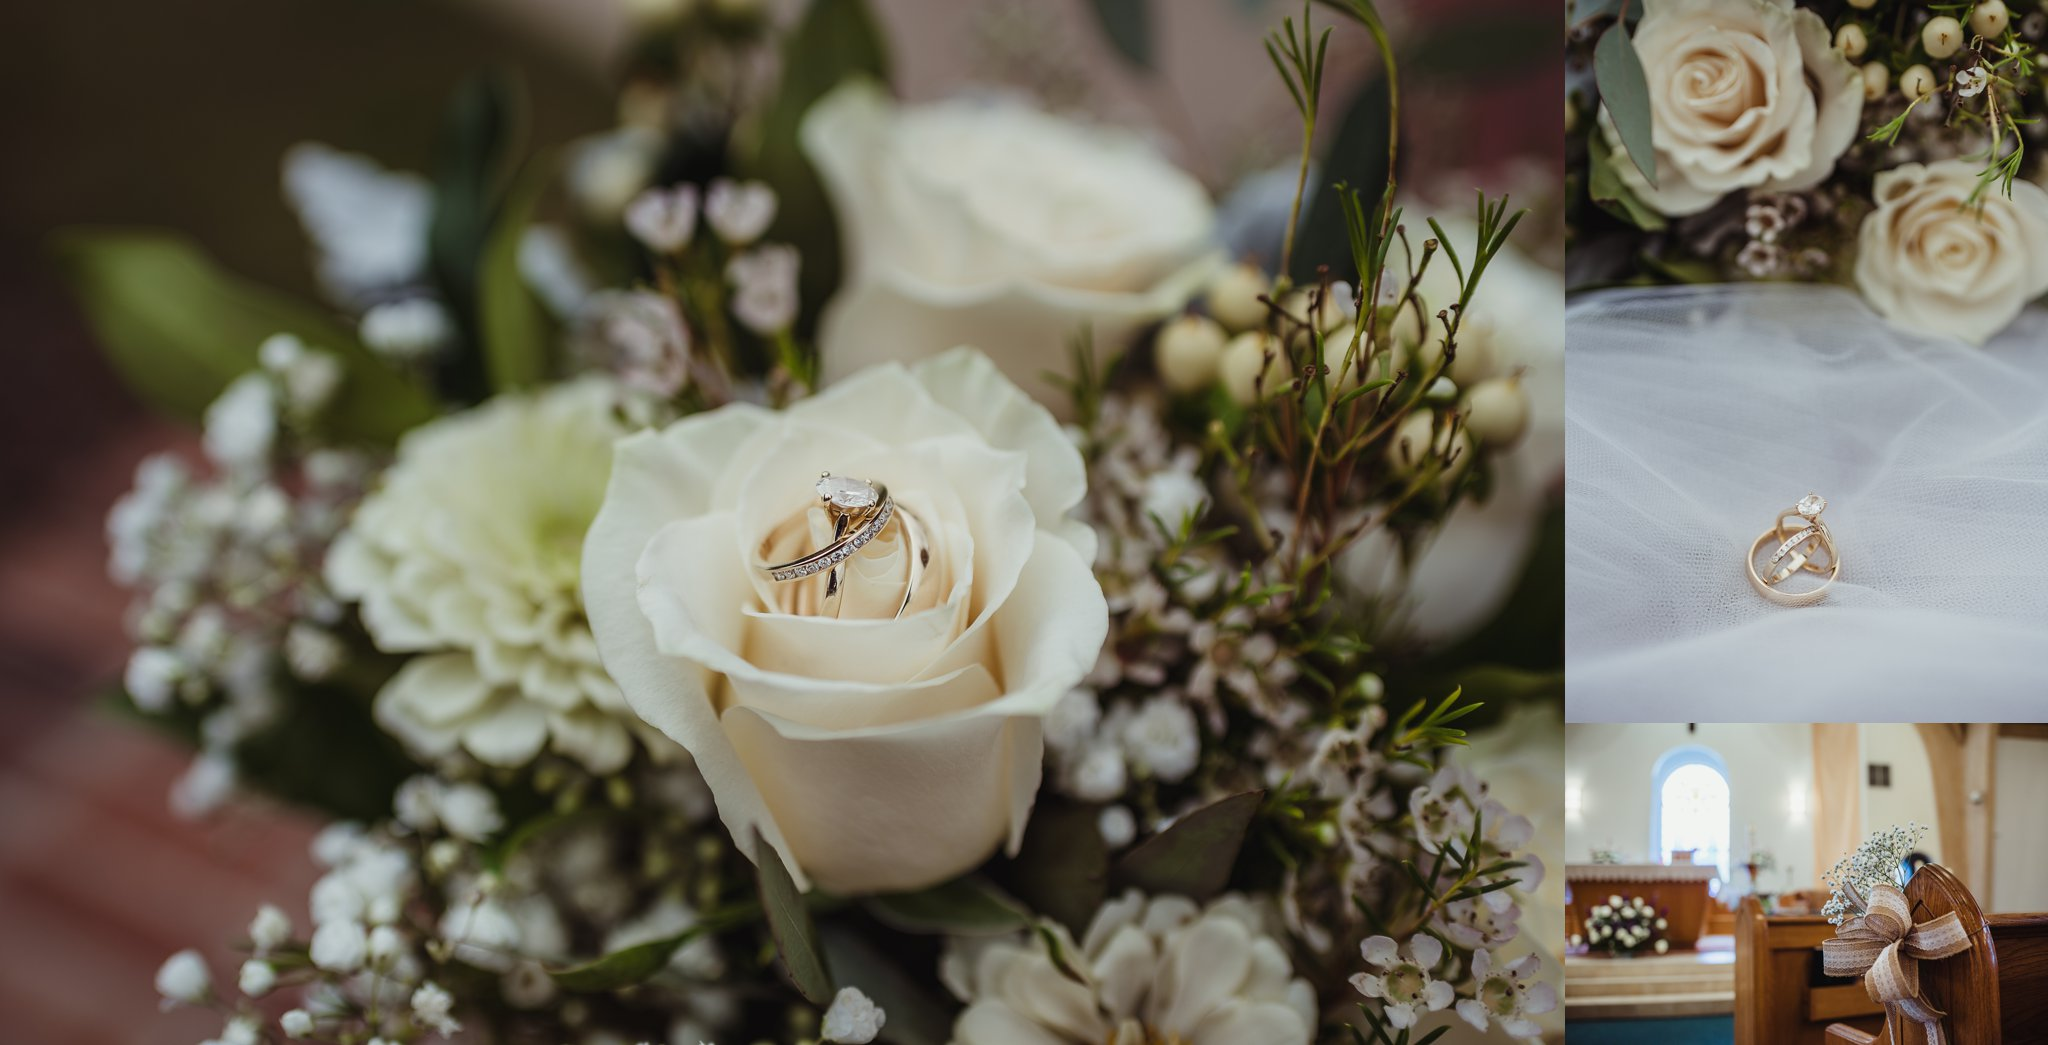 Details of the wedding at Saint Bernadette's Catholic Church in Fuquay Varina, North Carolina include burlap, white flowers, and simple gold and diamond wedding rings. Photo by Rose Trail Images.